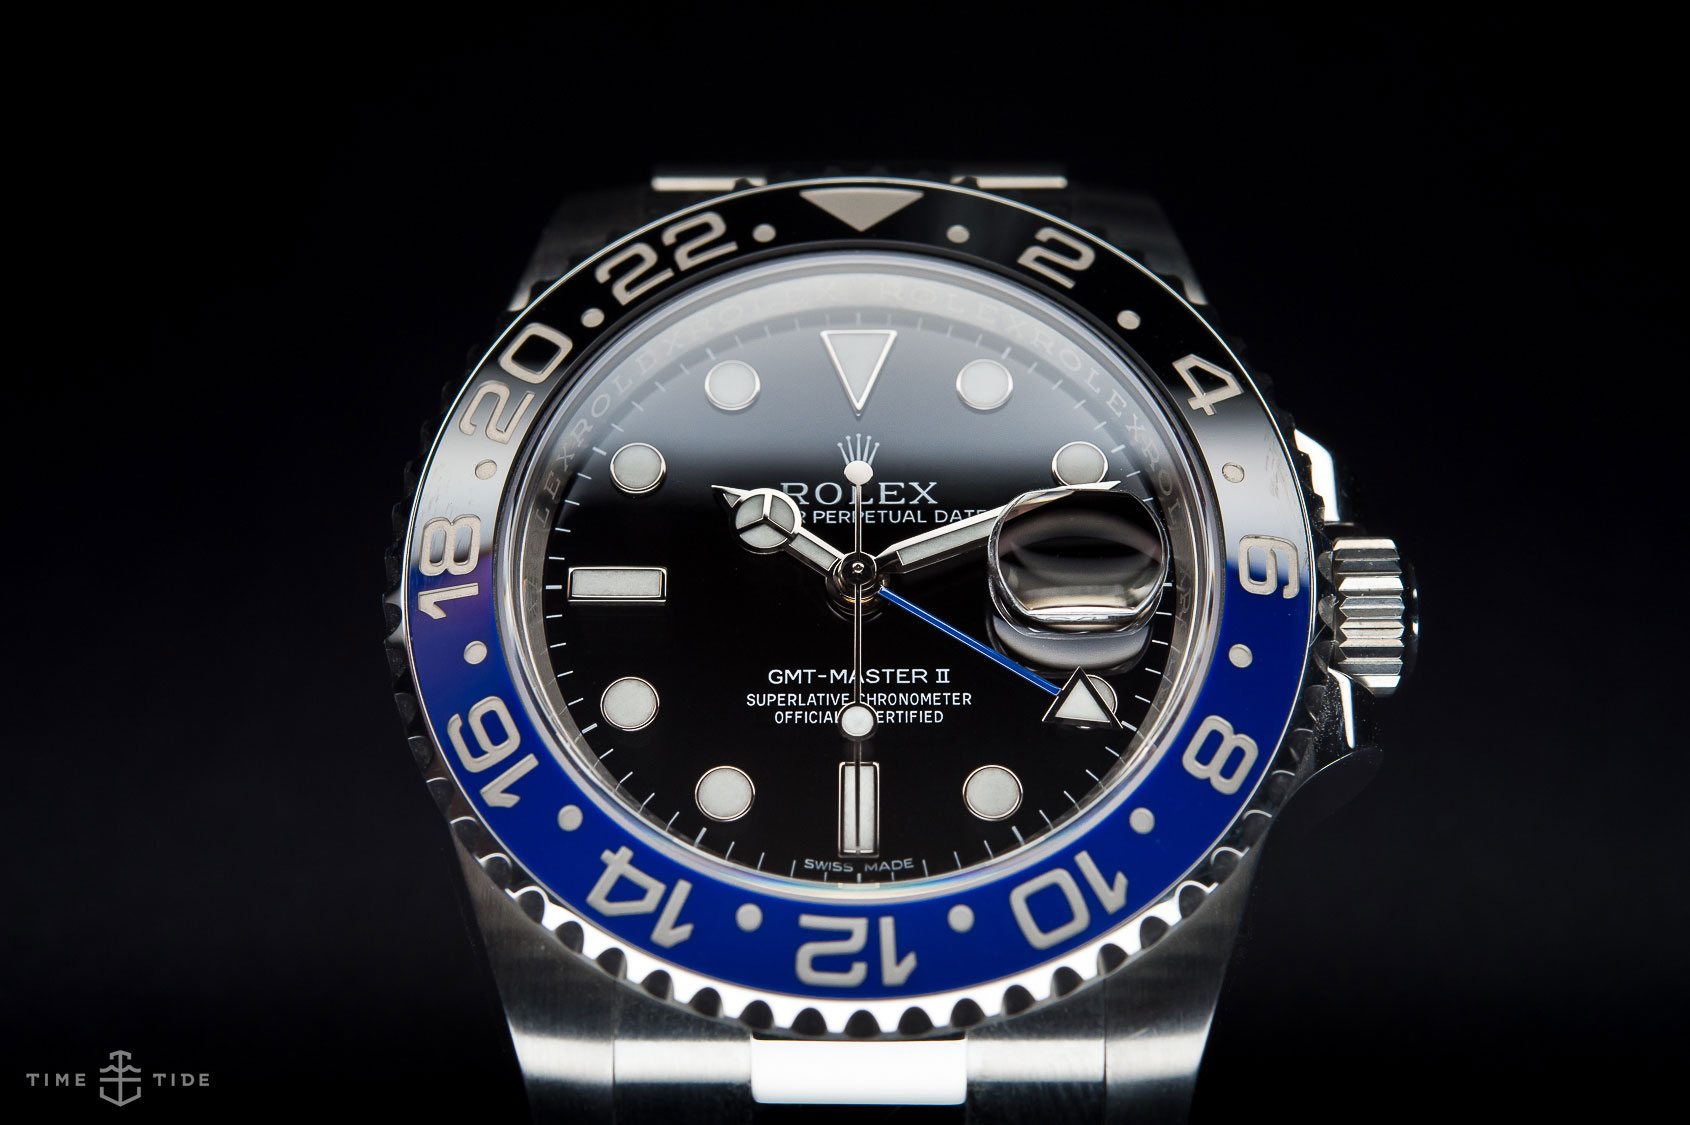 Rolex gmt master ii blnr in depth review for Rolex gmt master